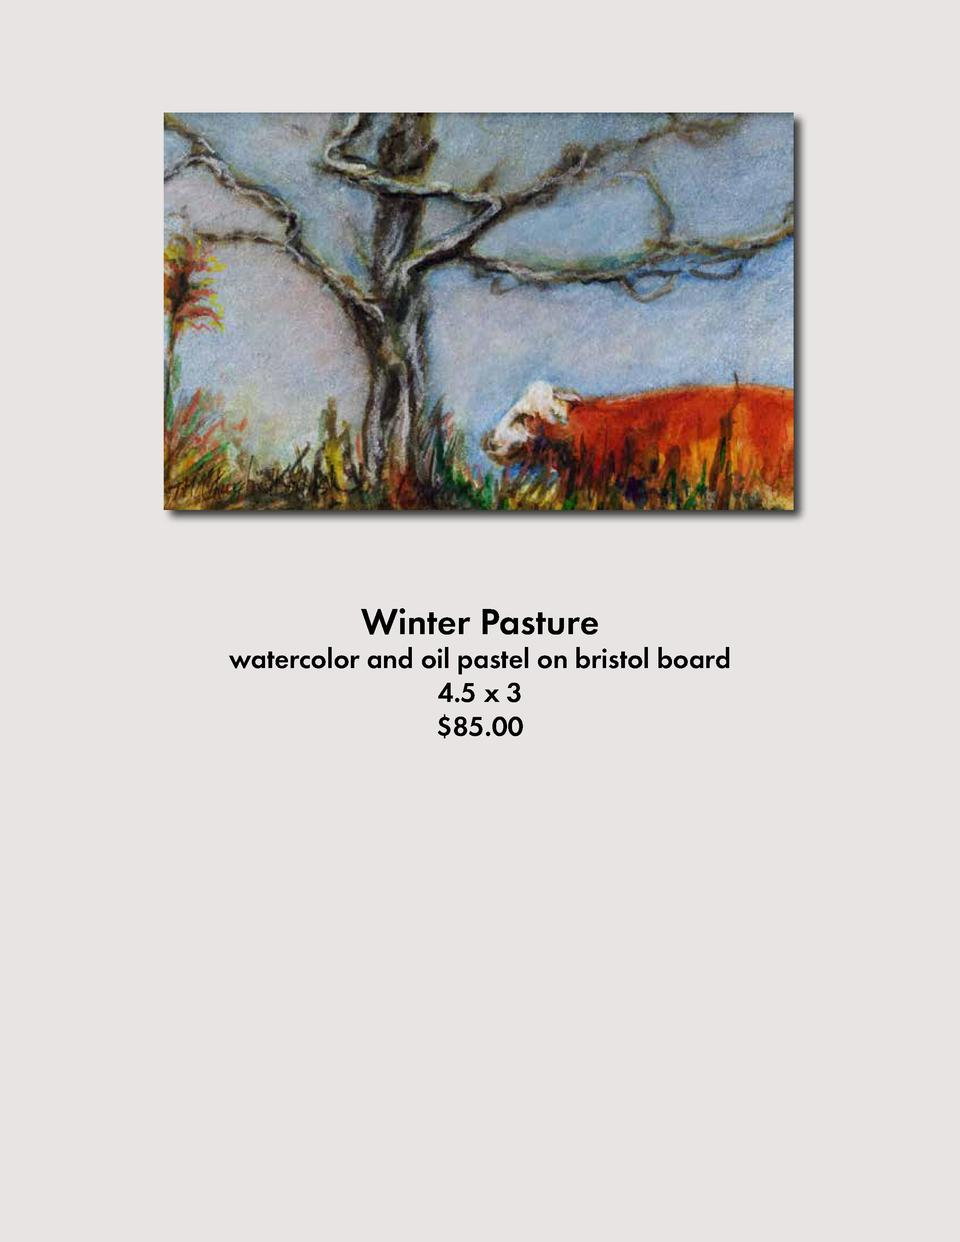 Winter Pasture  watercolor and oil pastel on bristol board 4.5 x 3  85.00